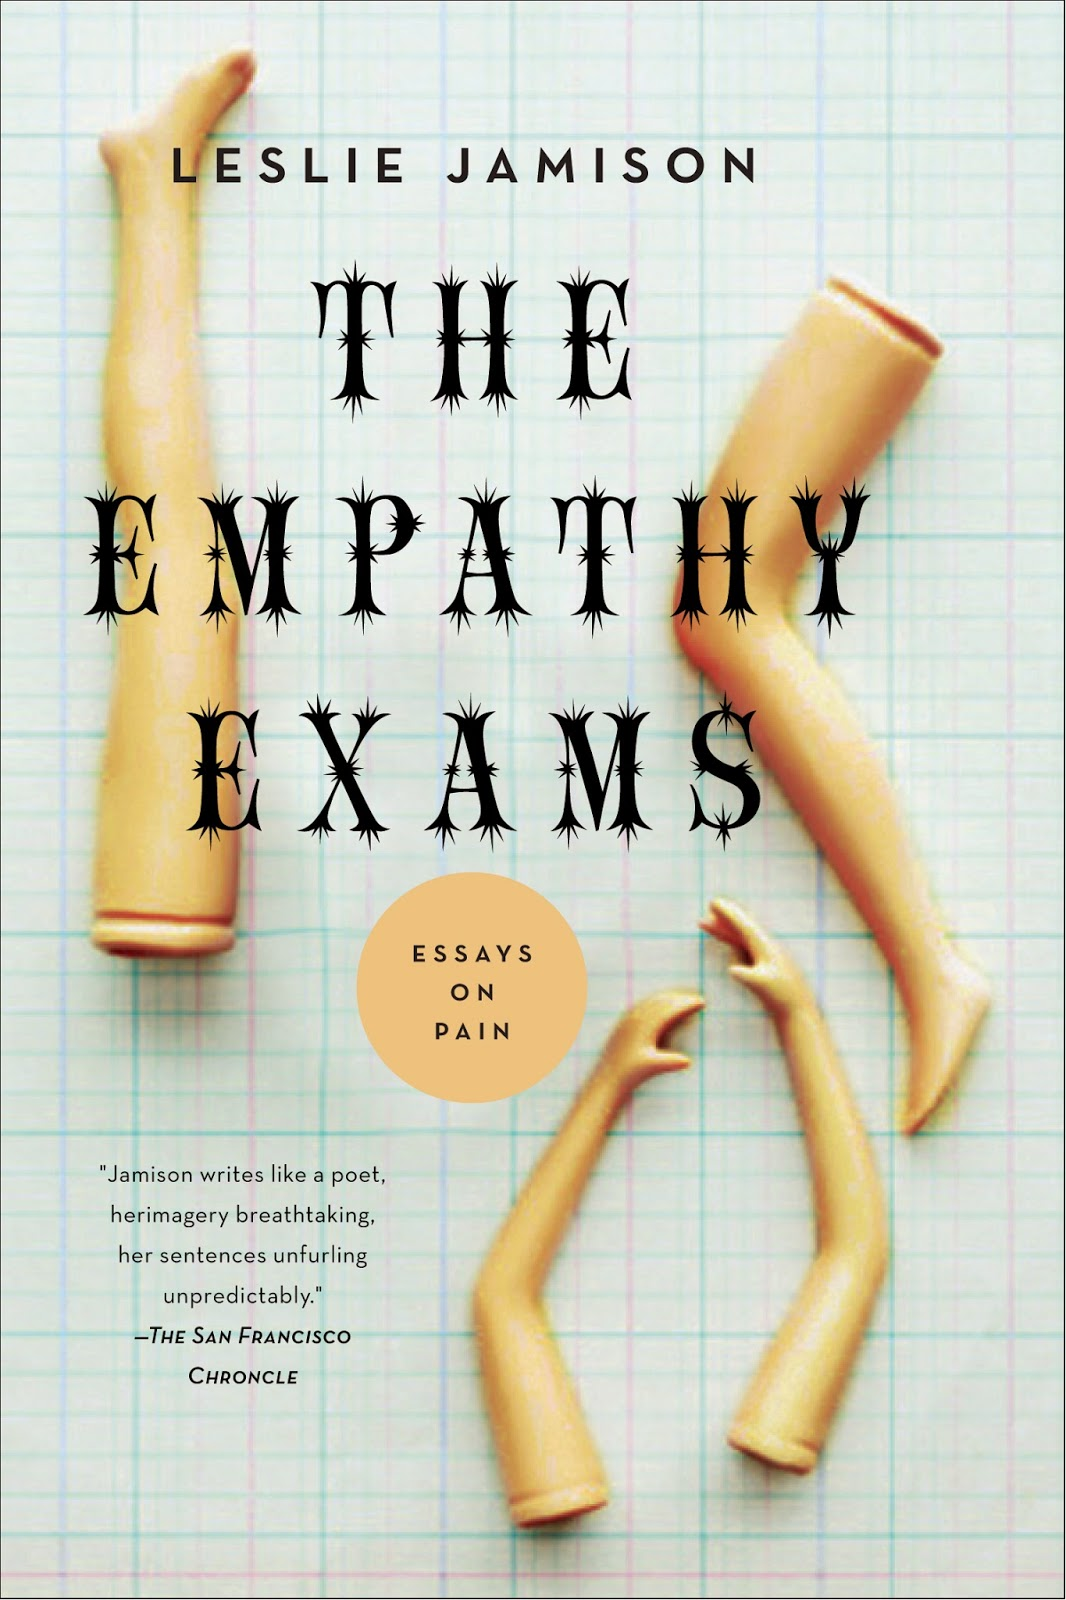 empathy essays book The empathy exams new york times bestseller, notable book of 2014, and editors' choice named a top 10 book of 2014 by entertainment weekly, publisher's weekly, oprah, slate, salon, the l magazine, and time out: new york.